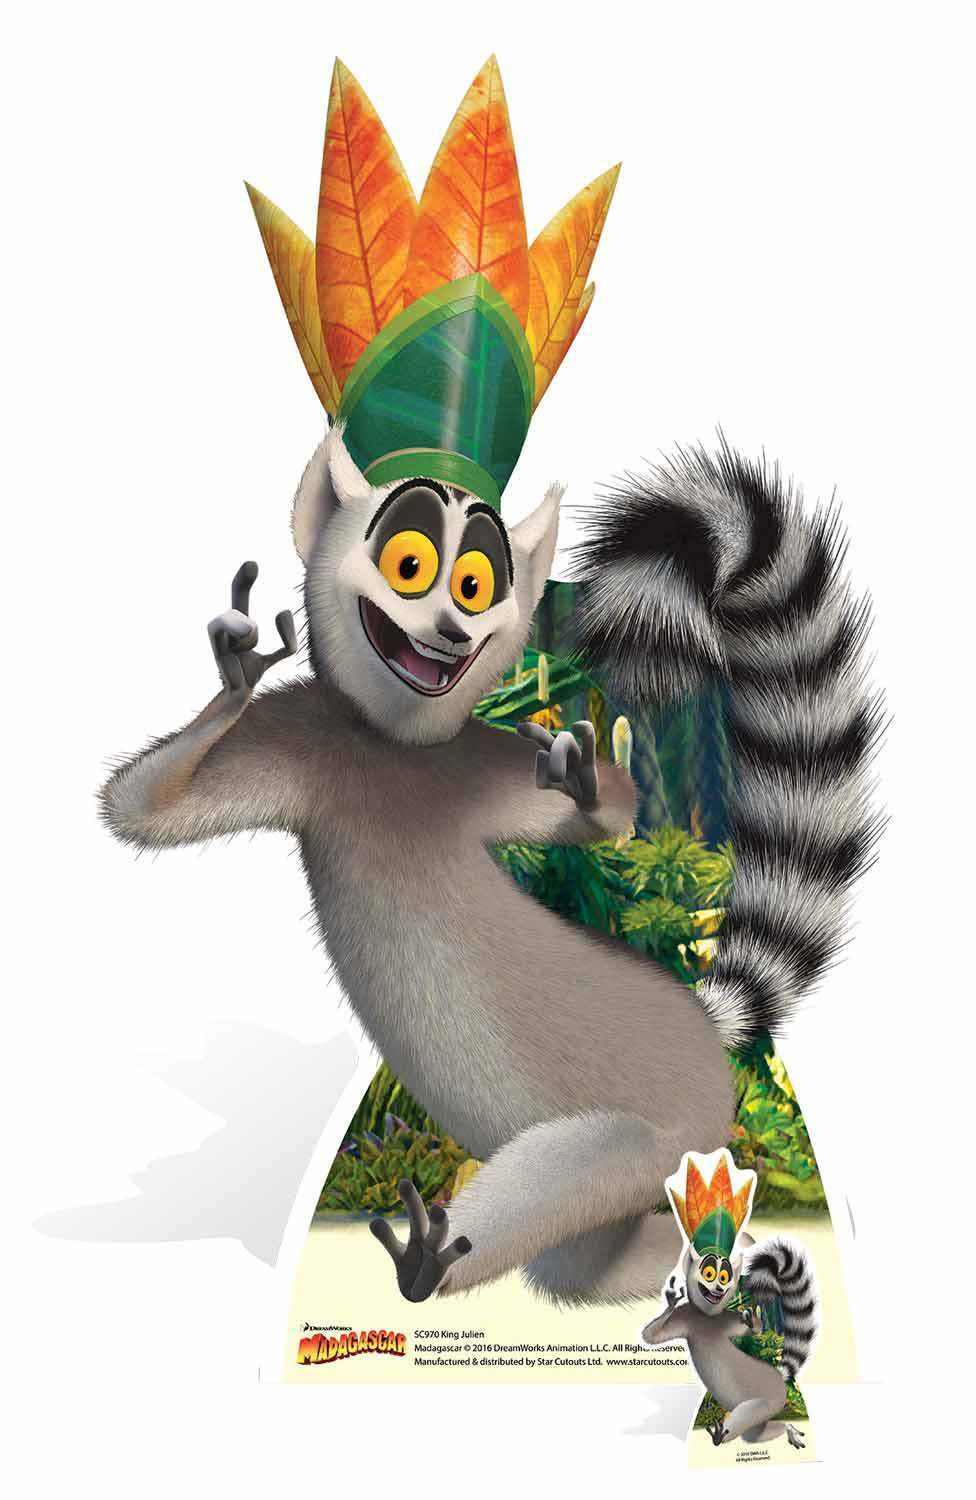 King Julien the Lemur from Madagascar LifeGröße and FREE Mini Cardboard Cutout